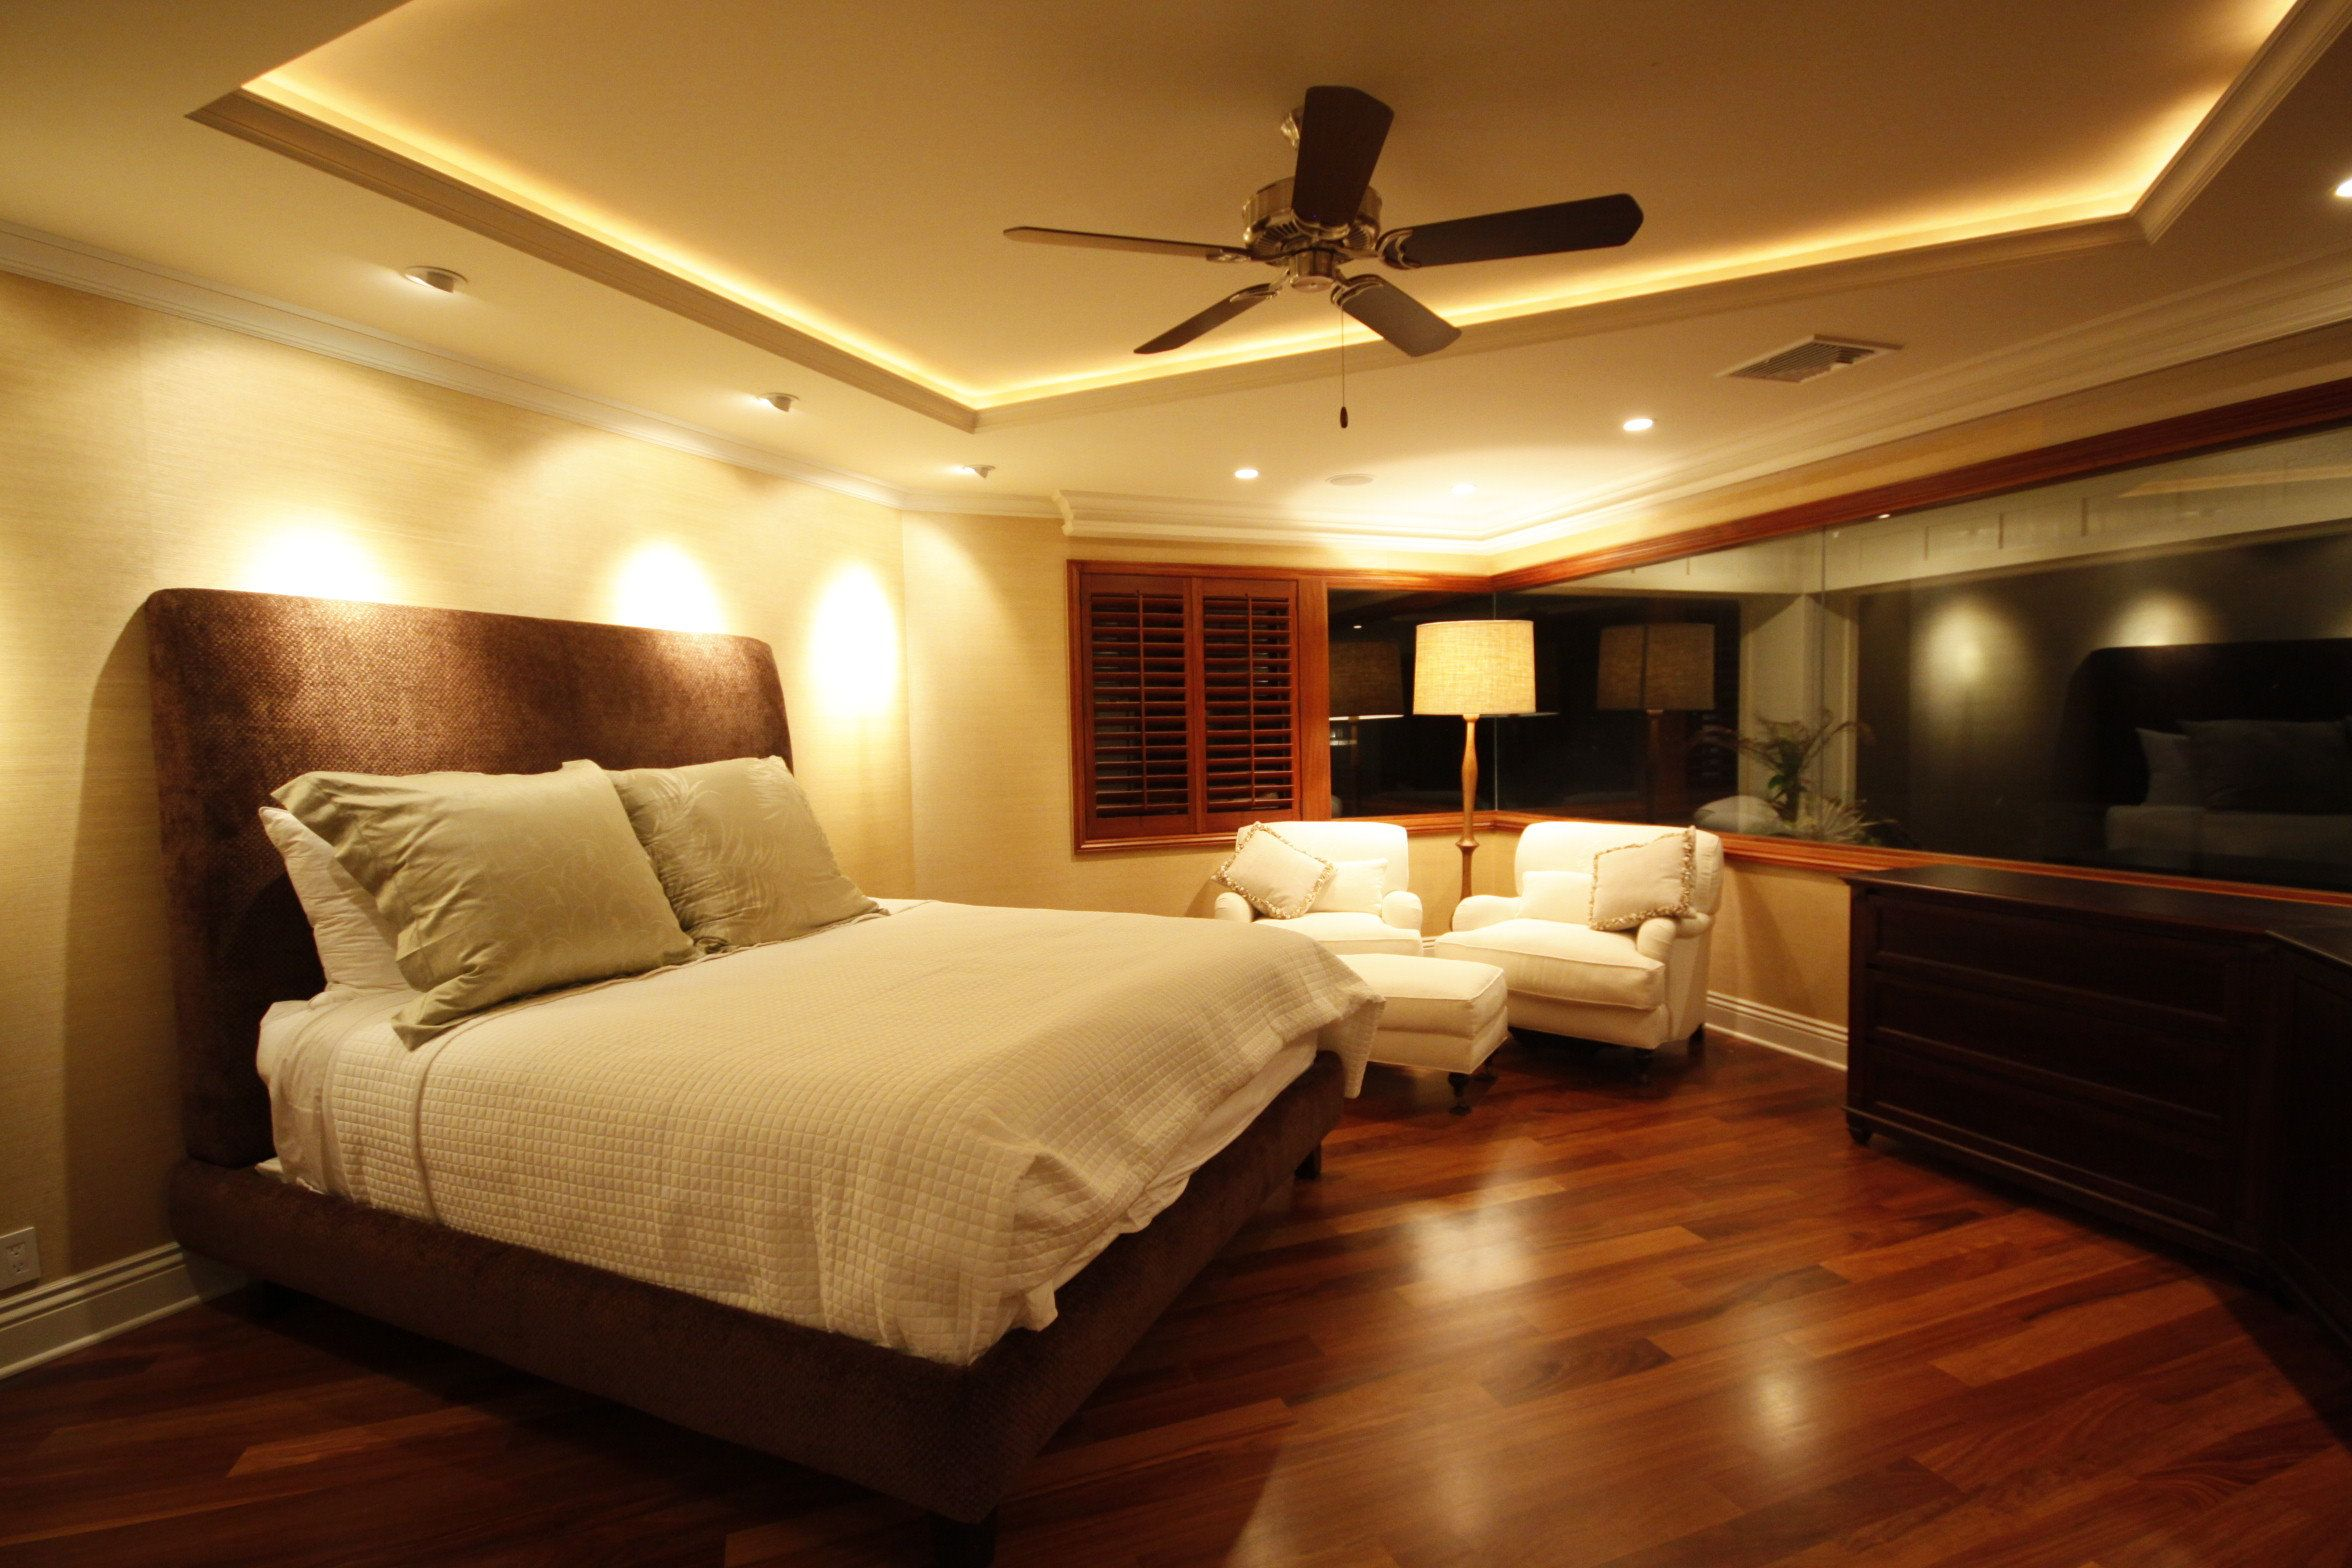 Appealing master bedroom modern decor with wooden floors for Modern master bedroom designs 2014